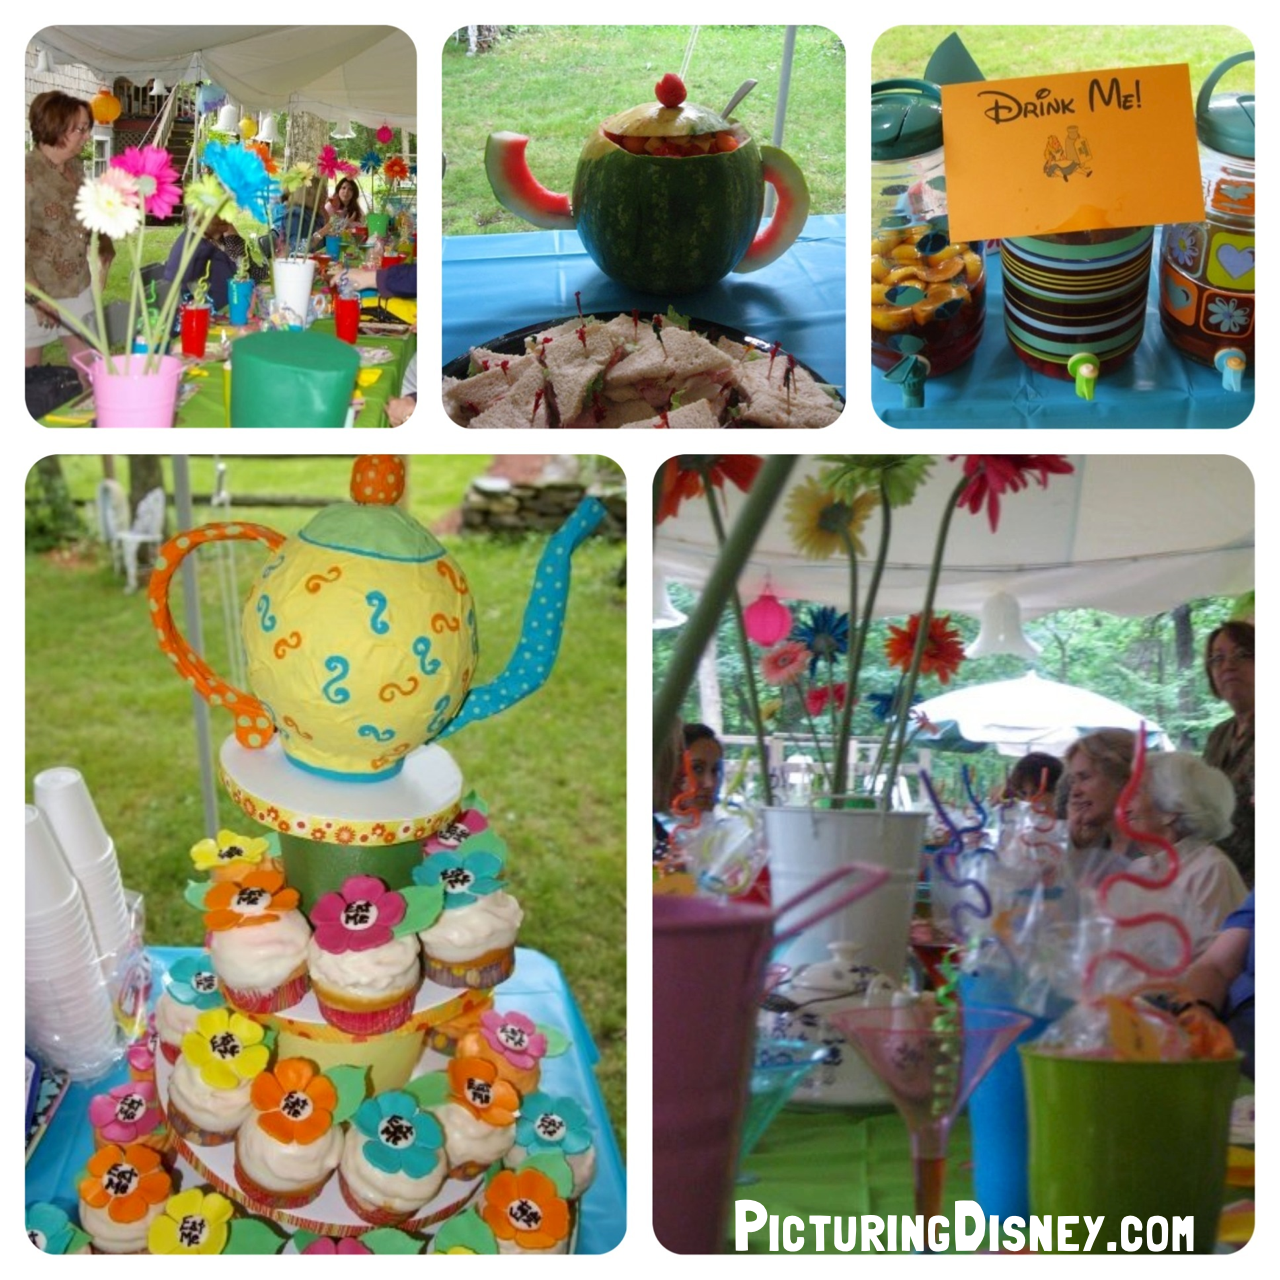 Beautiful Picturing Disney: Alice In Wonderland Themed Baby Shower Games!